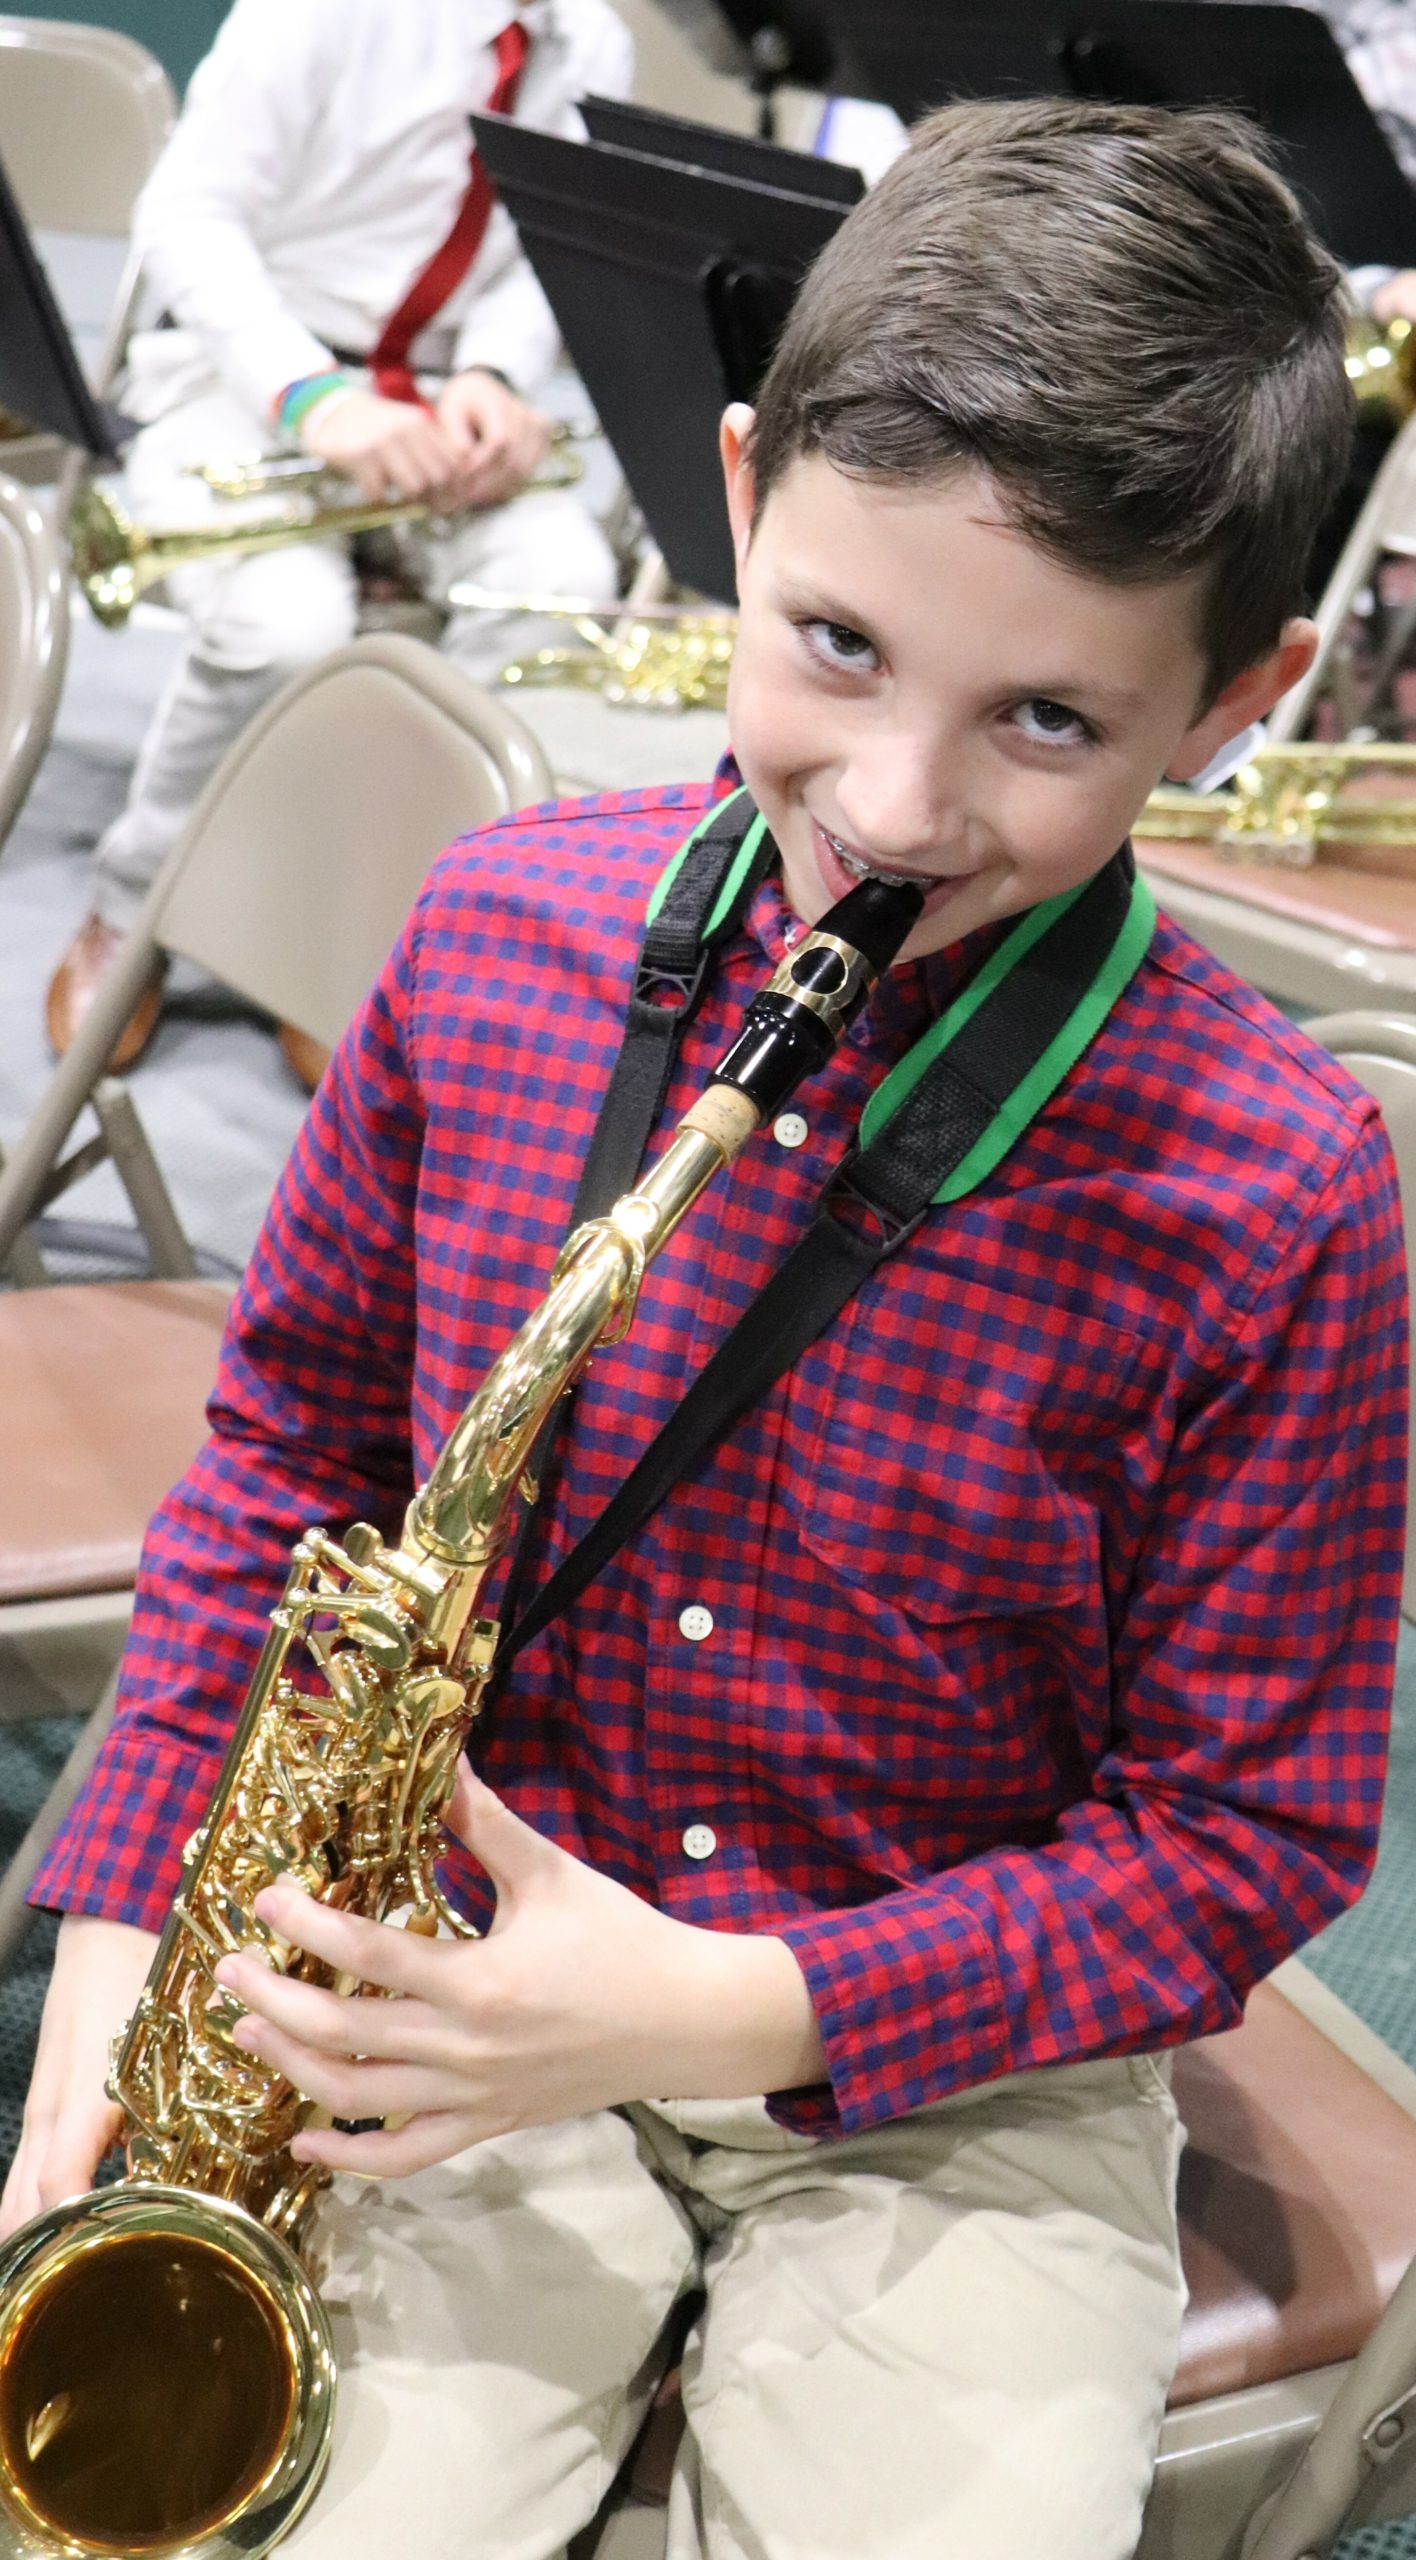 Raynor Country Day School hosted its annual Winter Concert for students in fourth- through sixth-grade. During the event, the senior band, jazz band, senior chorus, the ukulele ensemble and piano soloists performed. Dan Schumacher ready to perform.